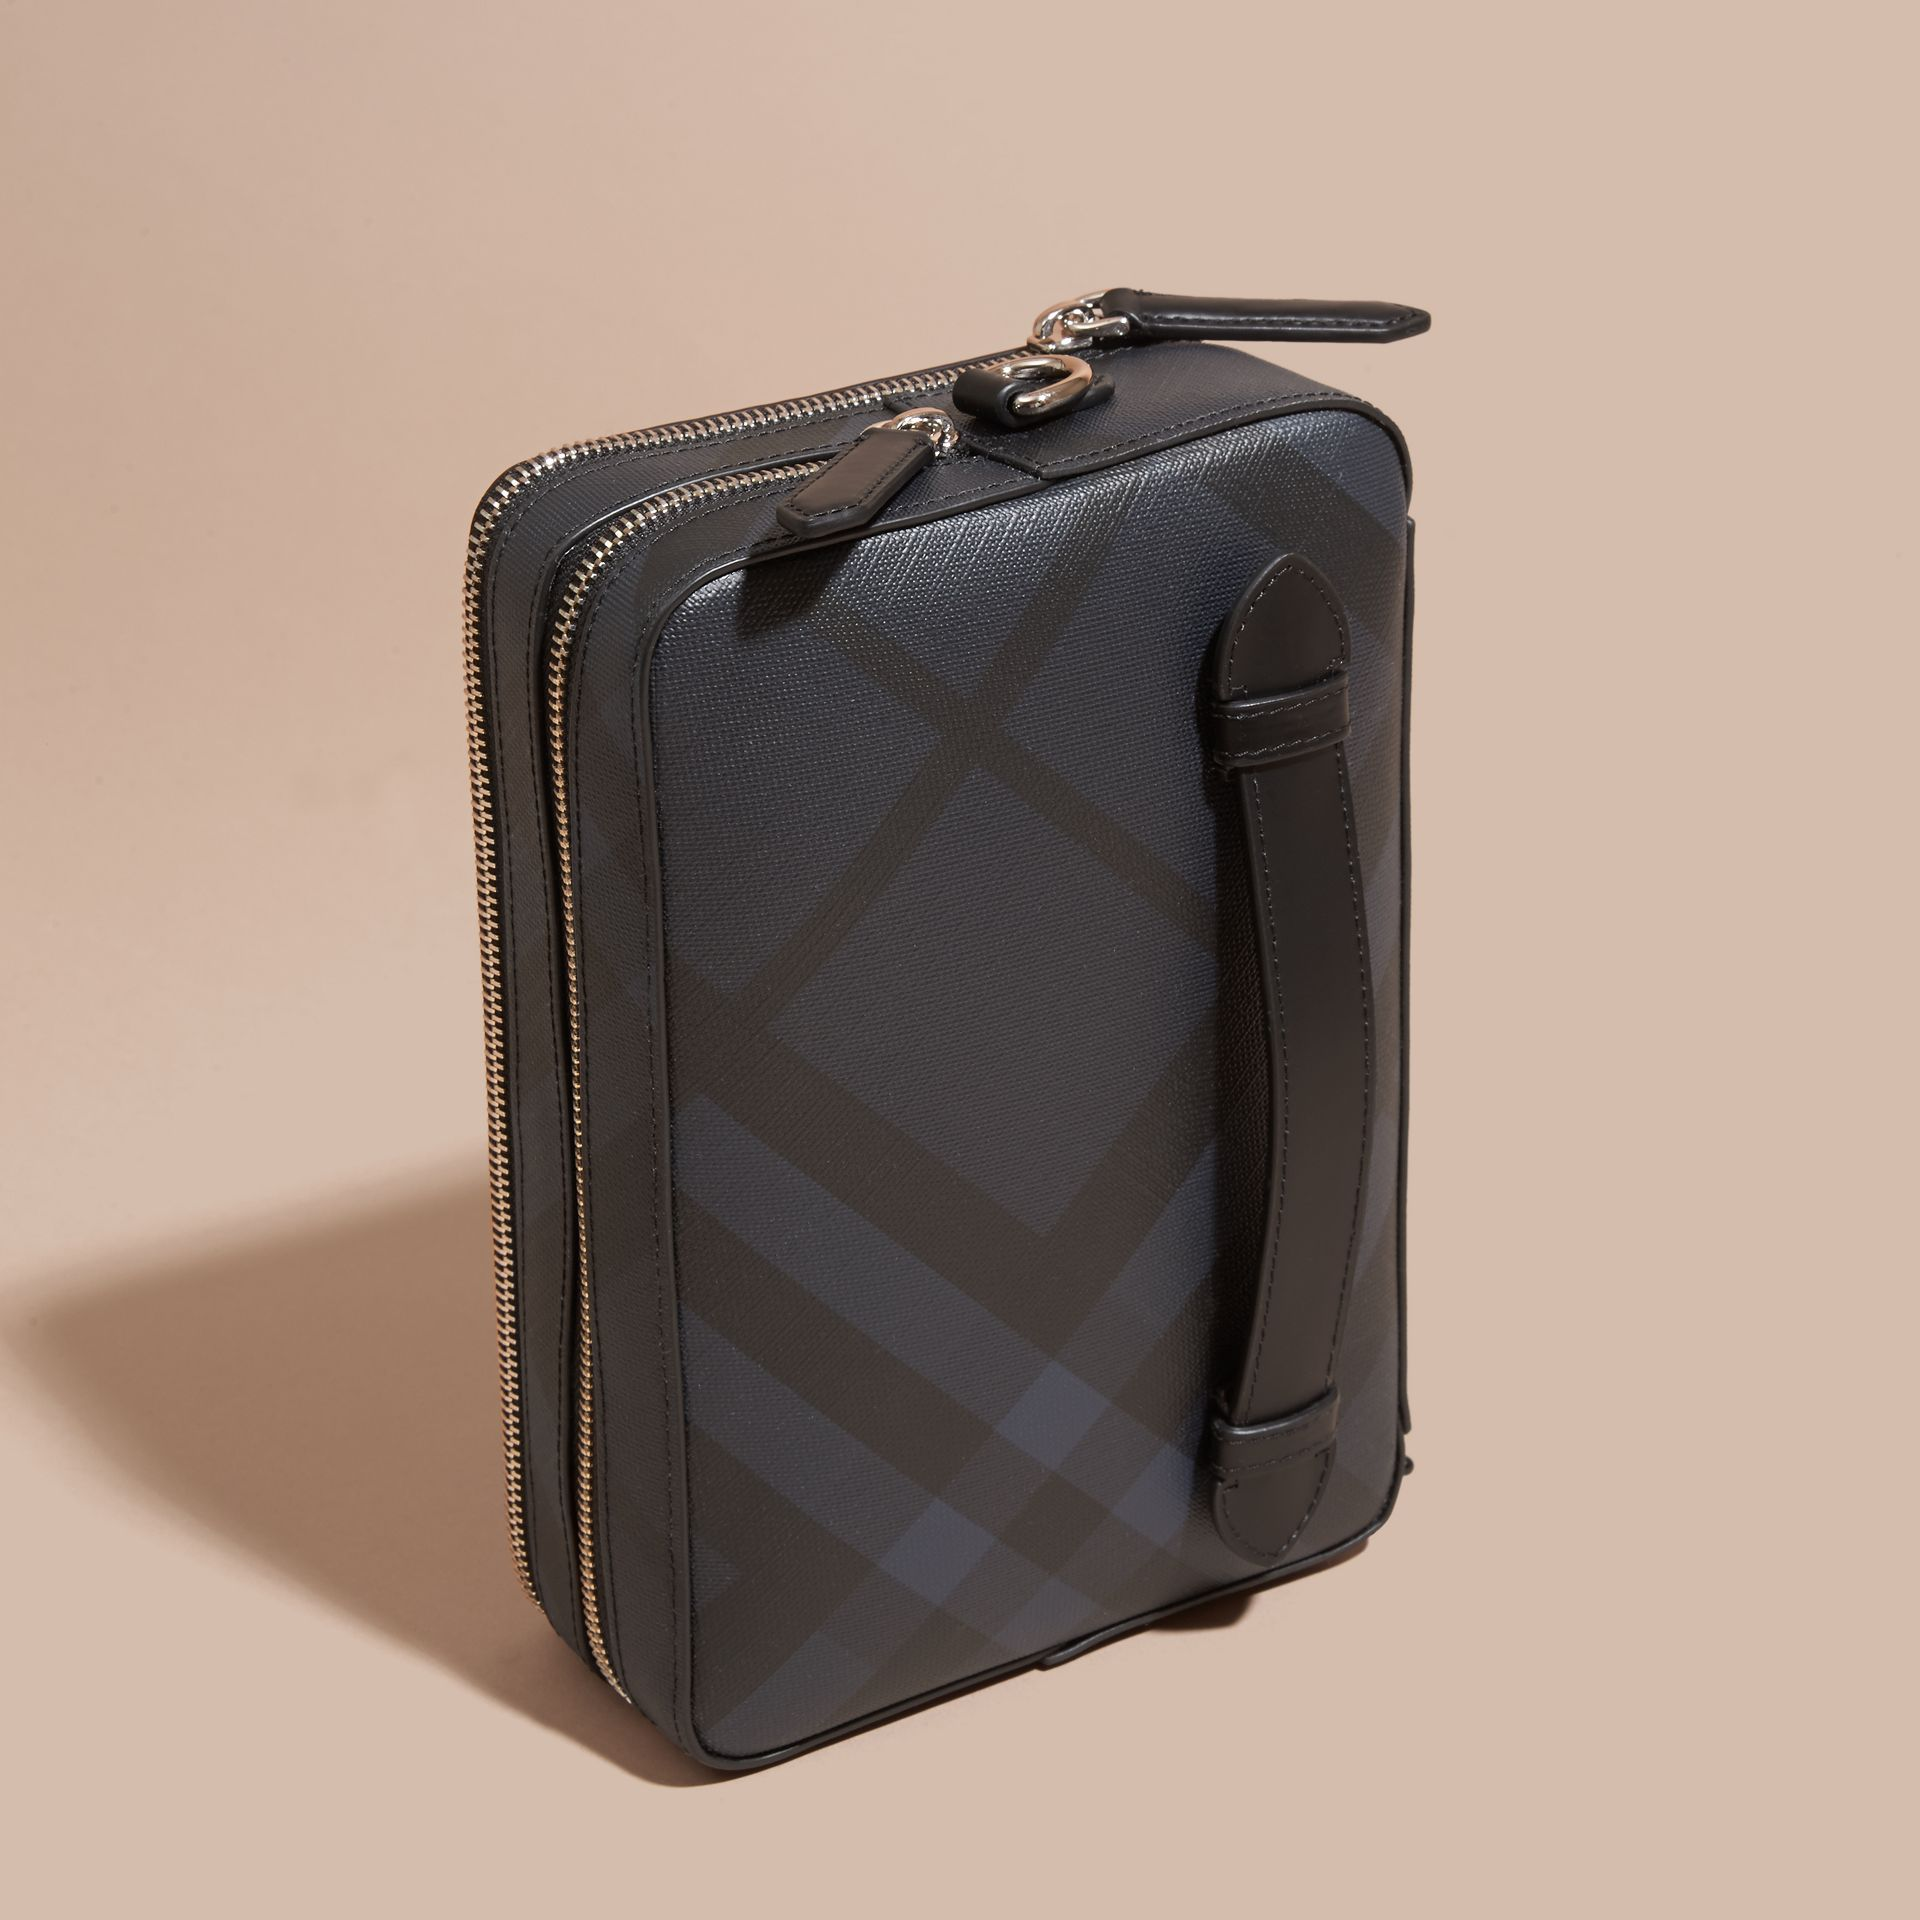 Leather-trimmed London Check Pouch in Navy/black - Men | Burberry Australia - gallery image 3